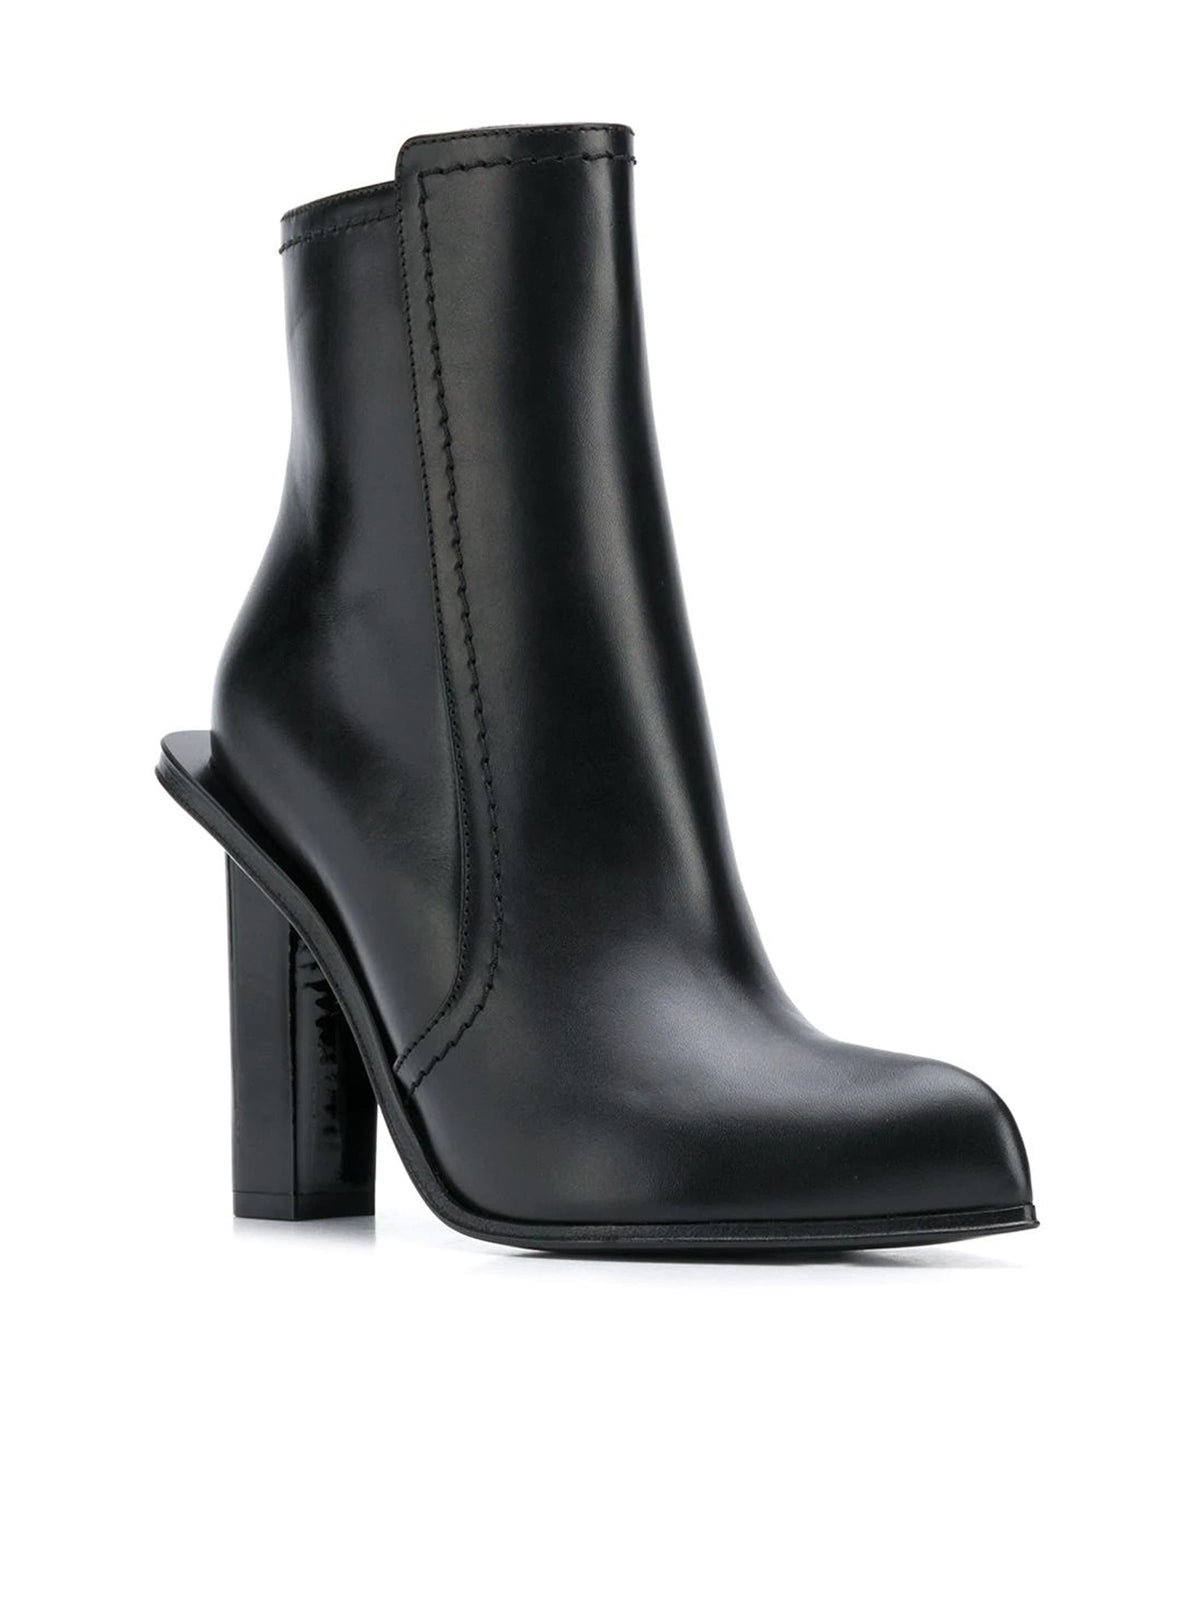 120mm ankle boots